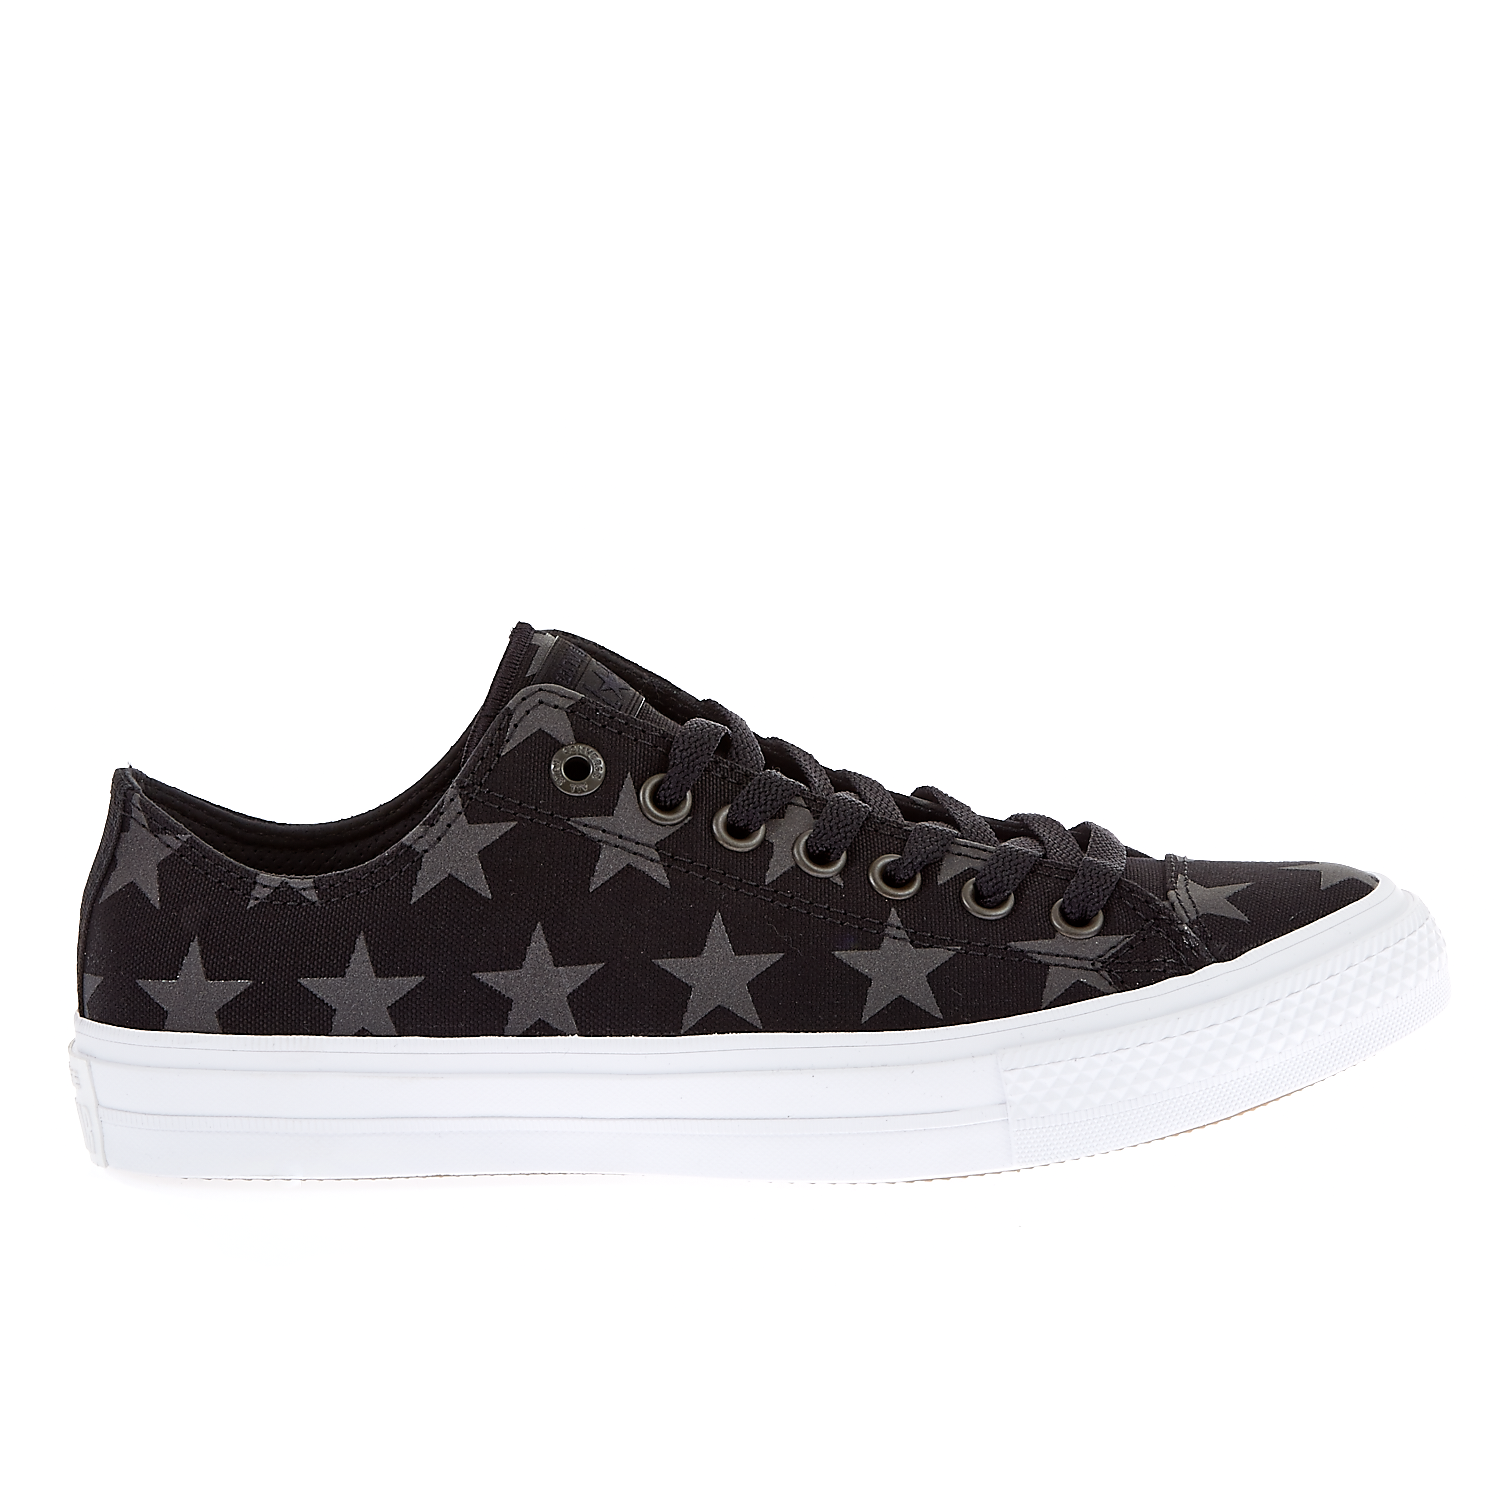 CONVERSE – Unisex παπούτσια Chuck Taylor All Star II Ox μαύρα